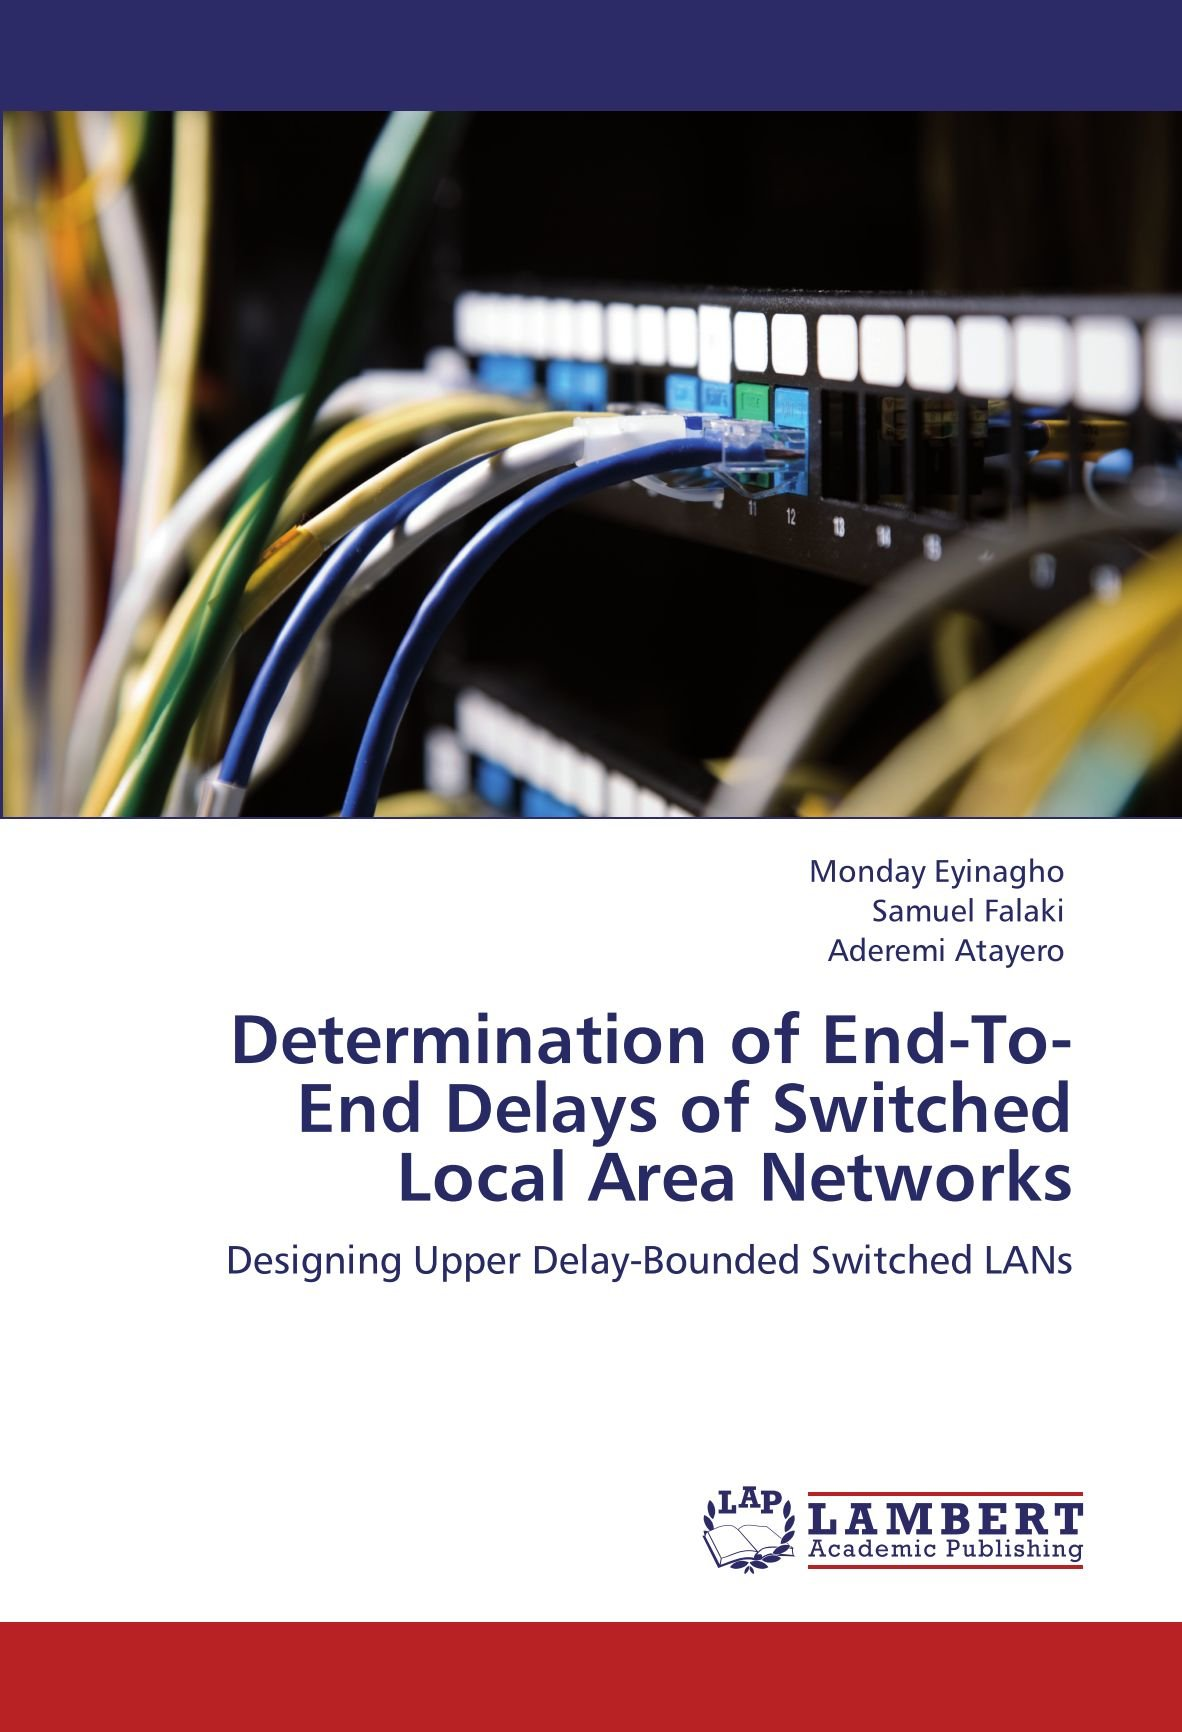 Determination of End-To-End Delays of Switched Local Area Networks: Designing Upper Delay-Bounded Switched LANs